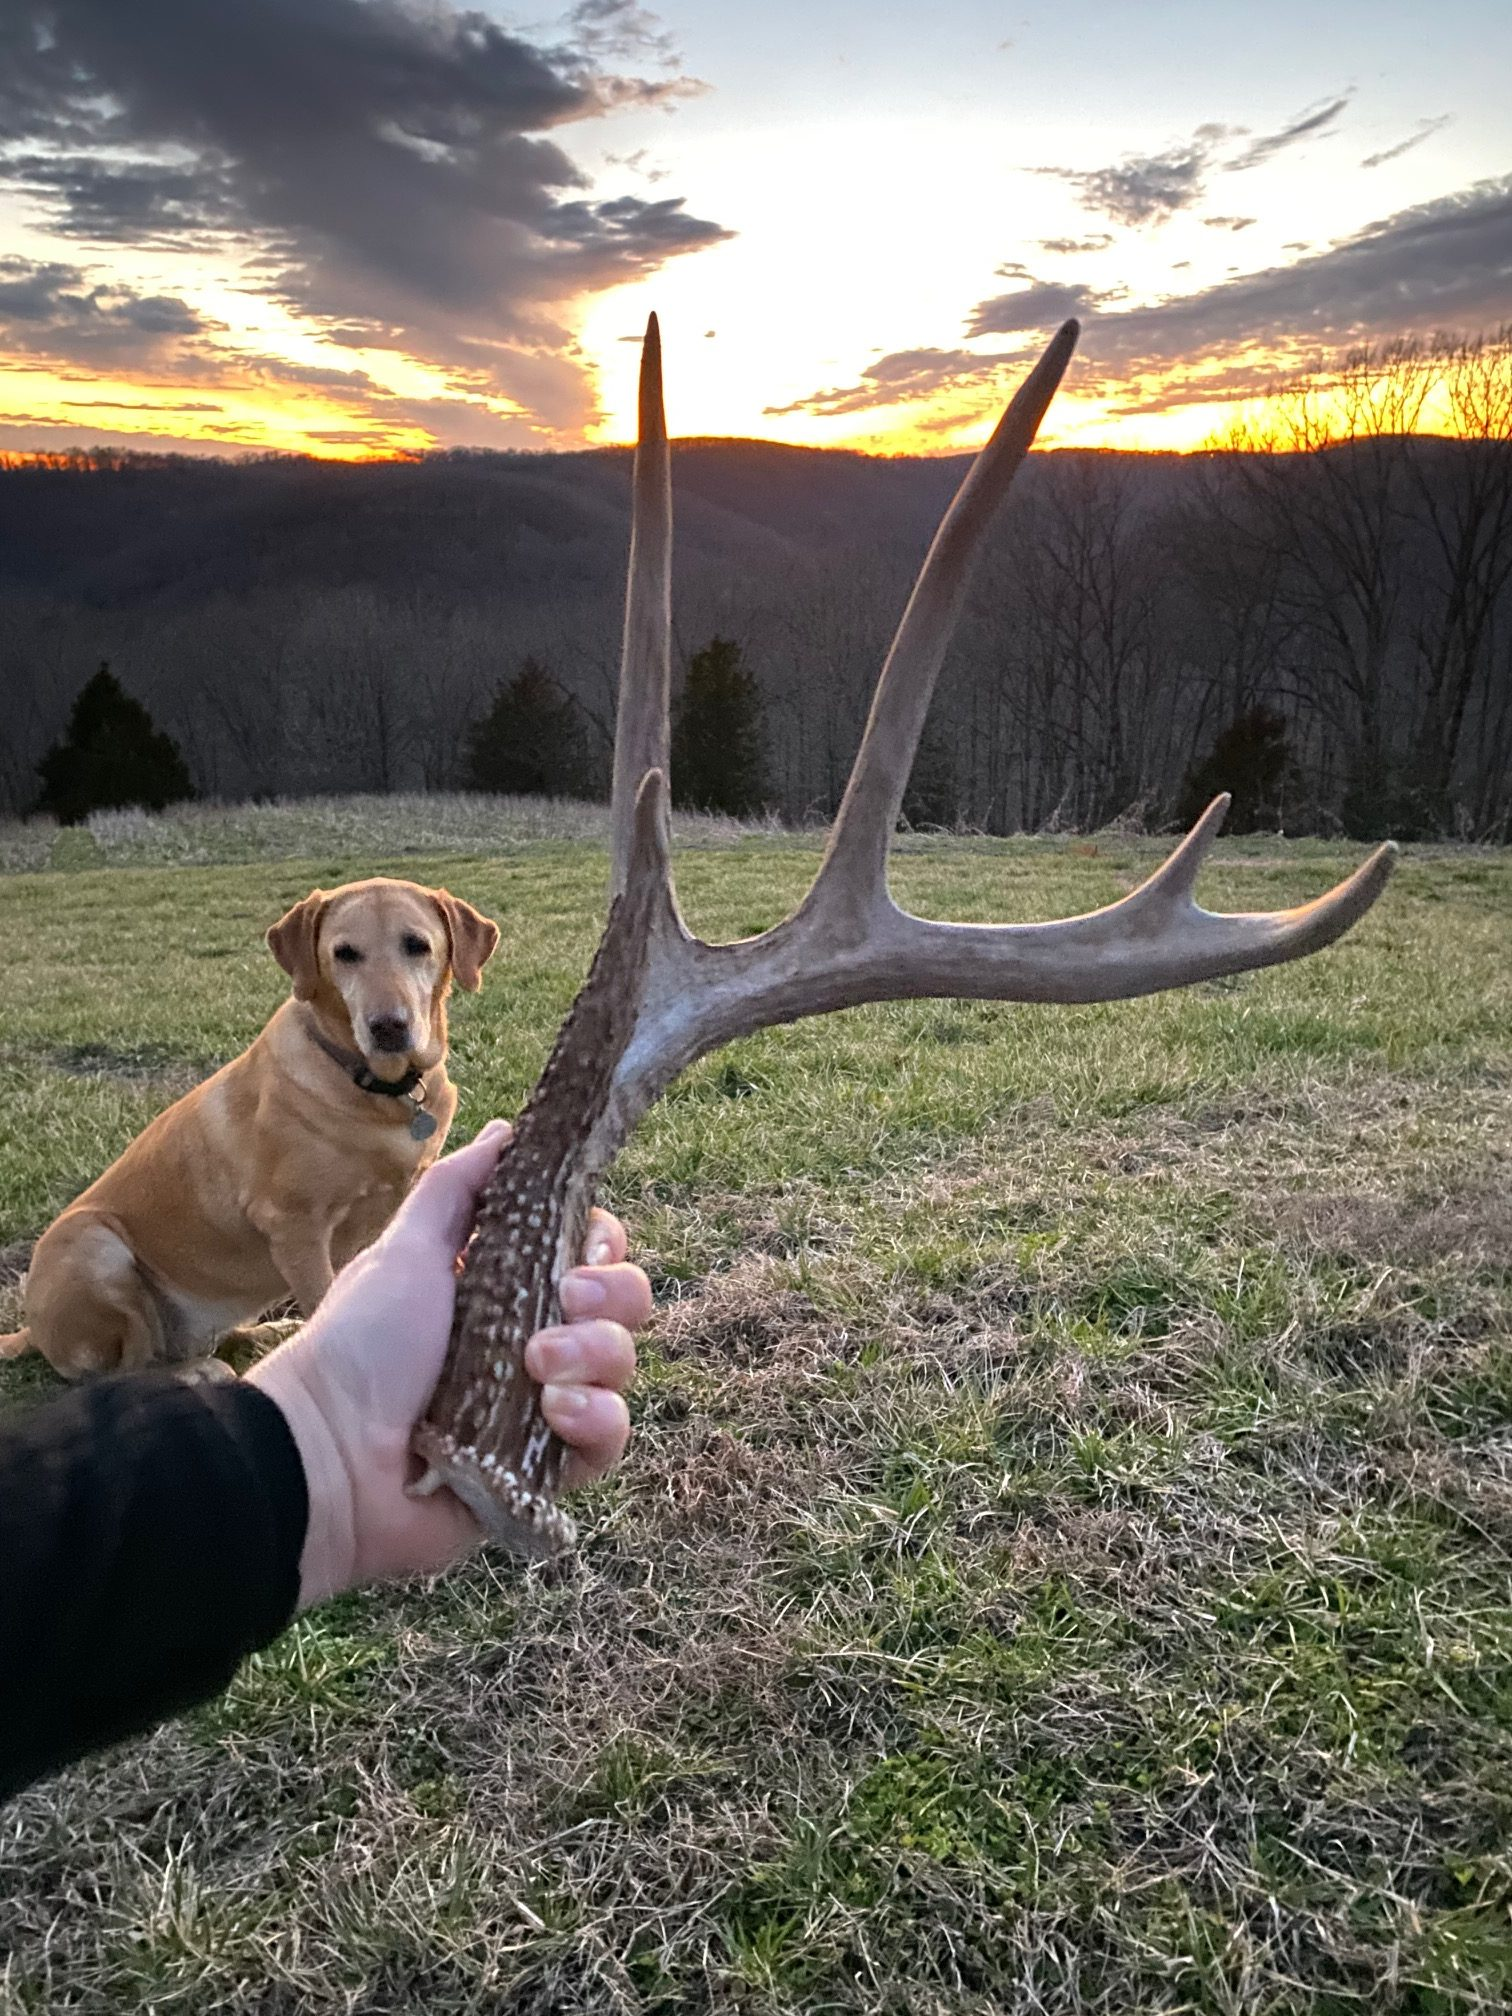 An antler found on a trail near sunset